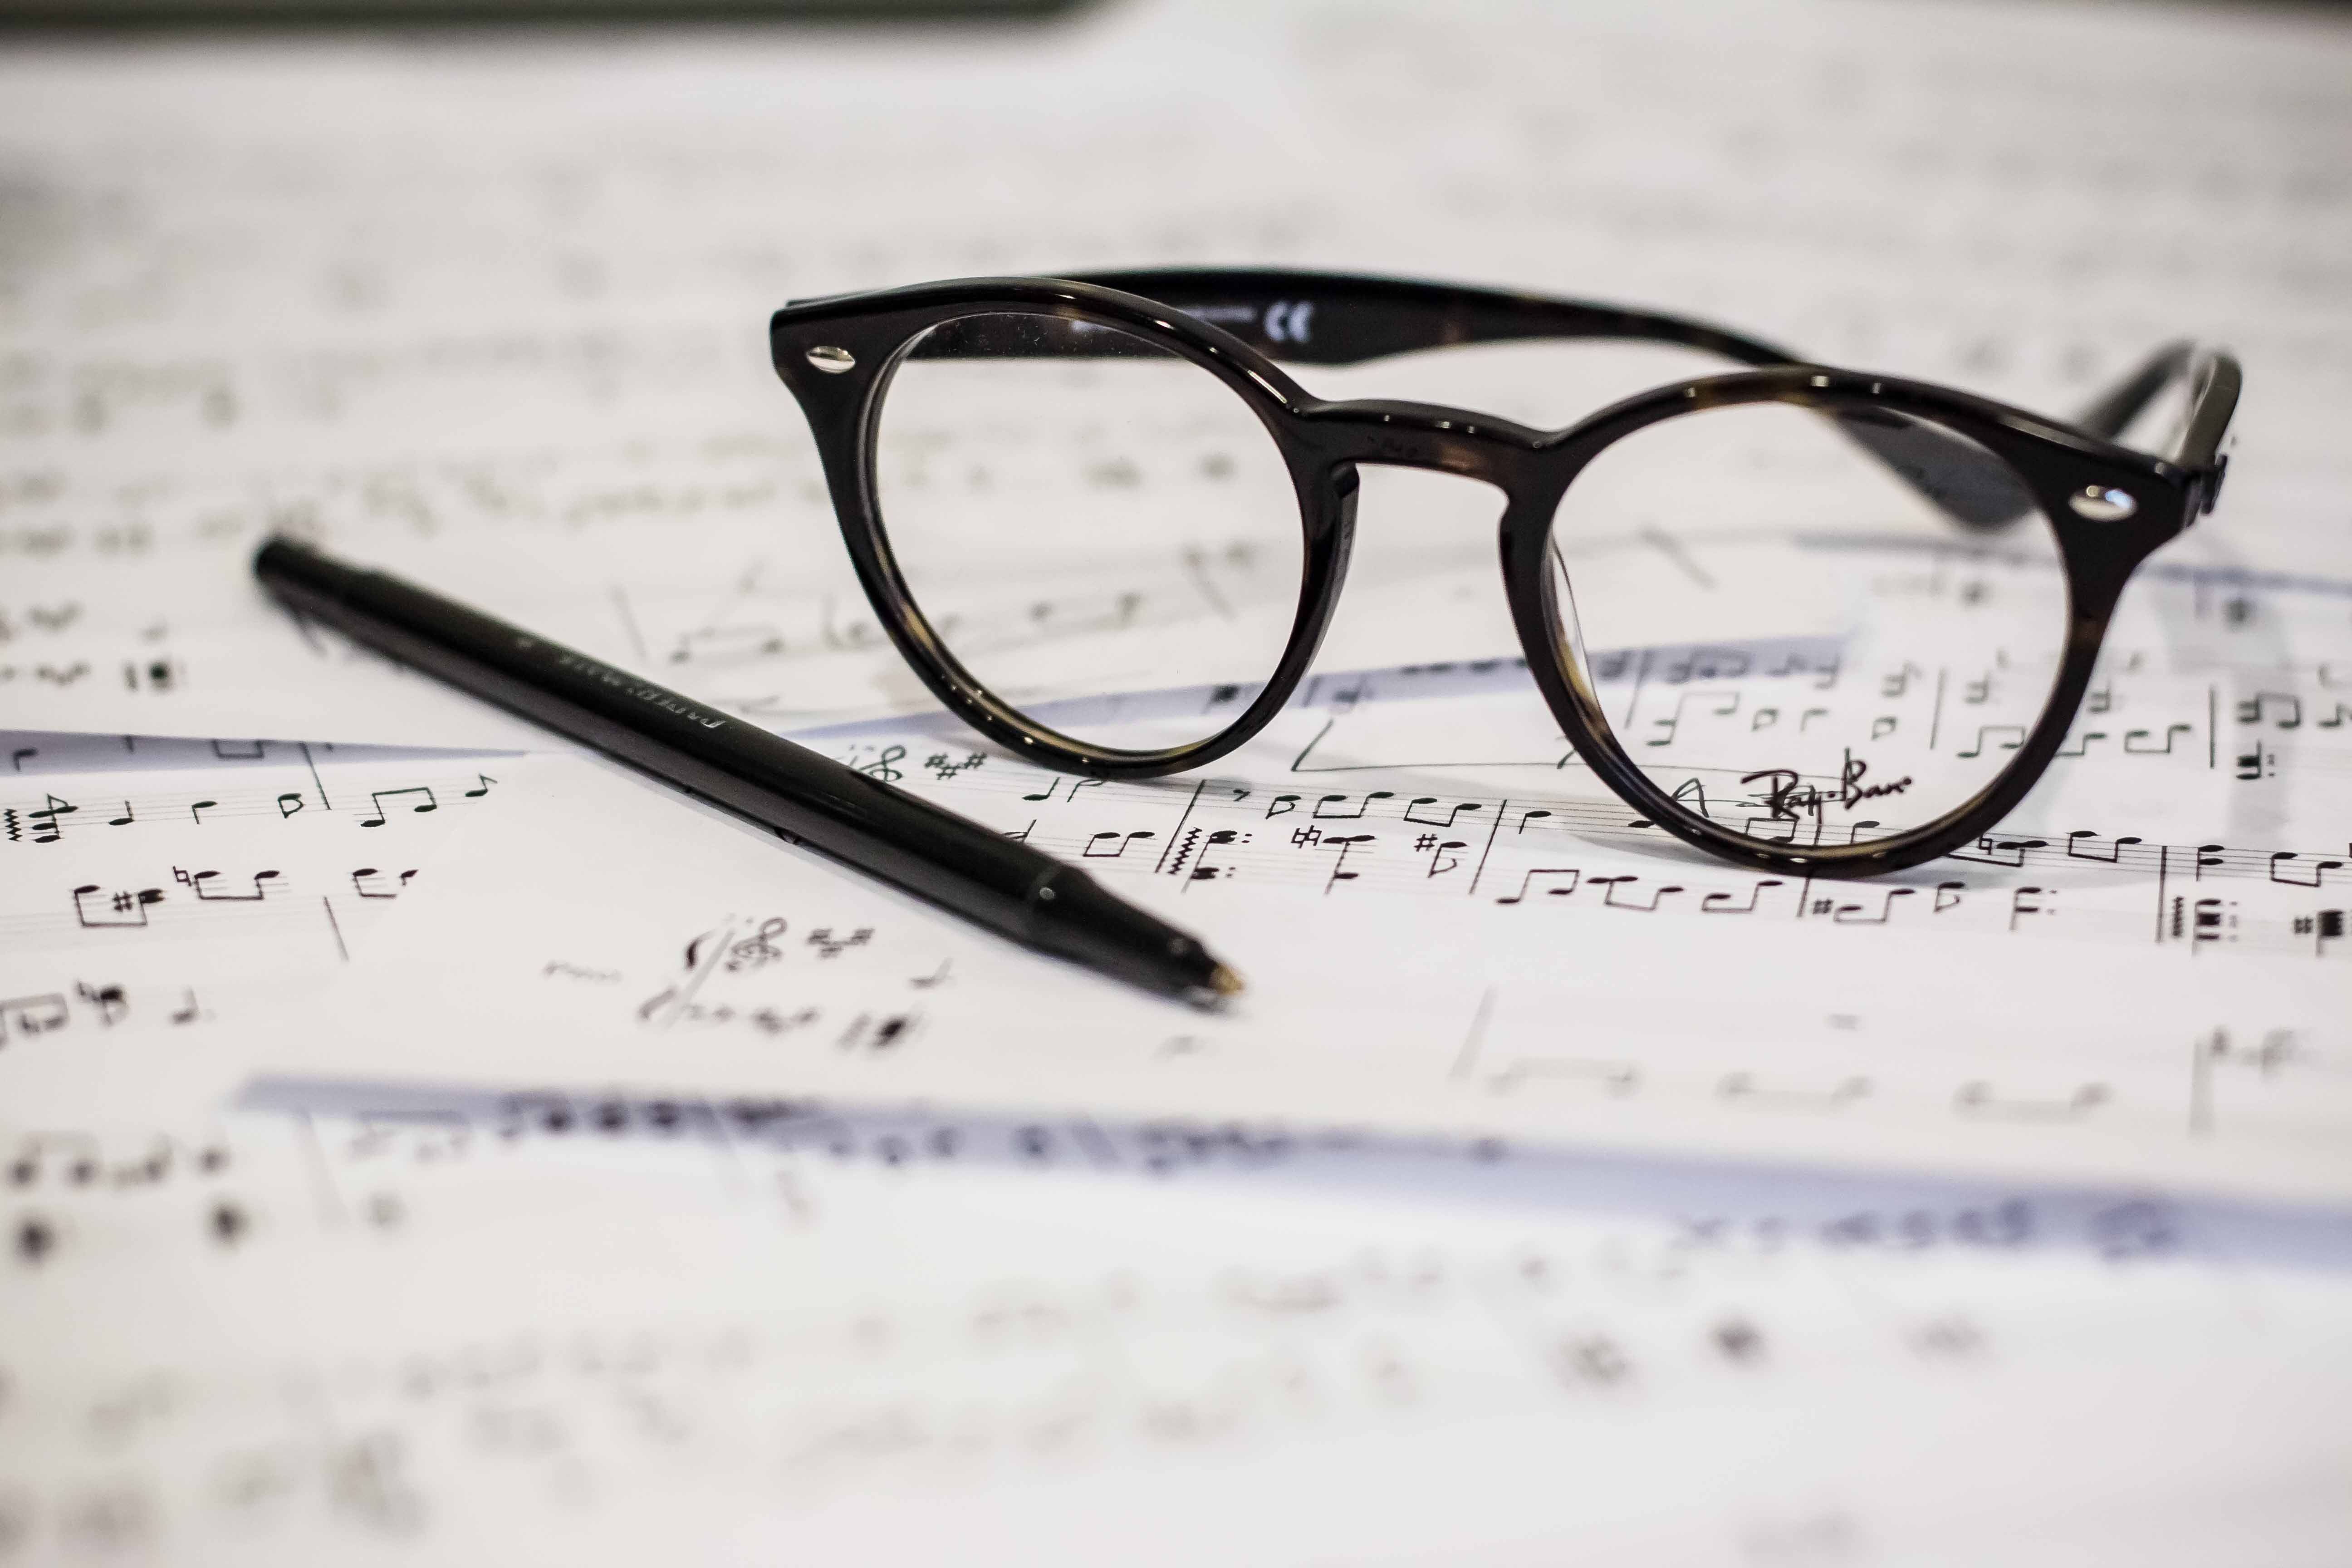 Glasses, pen and music sheets, ready for a music exam.